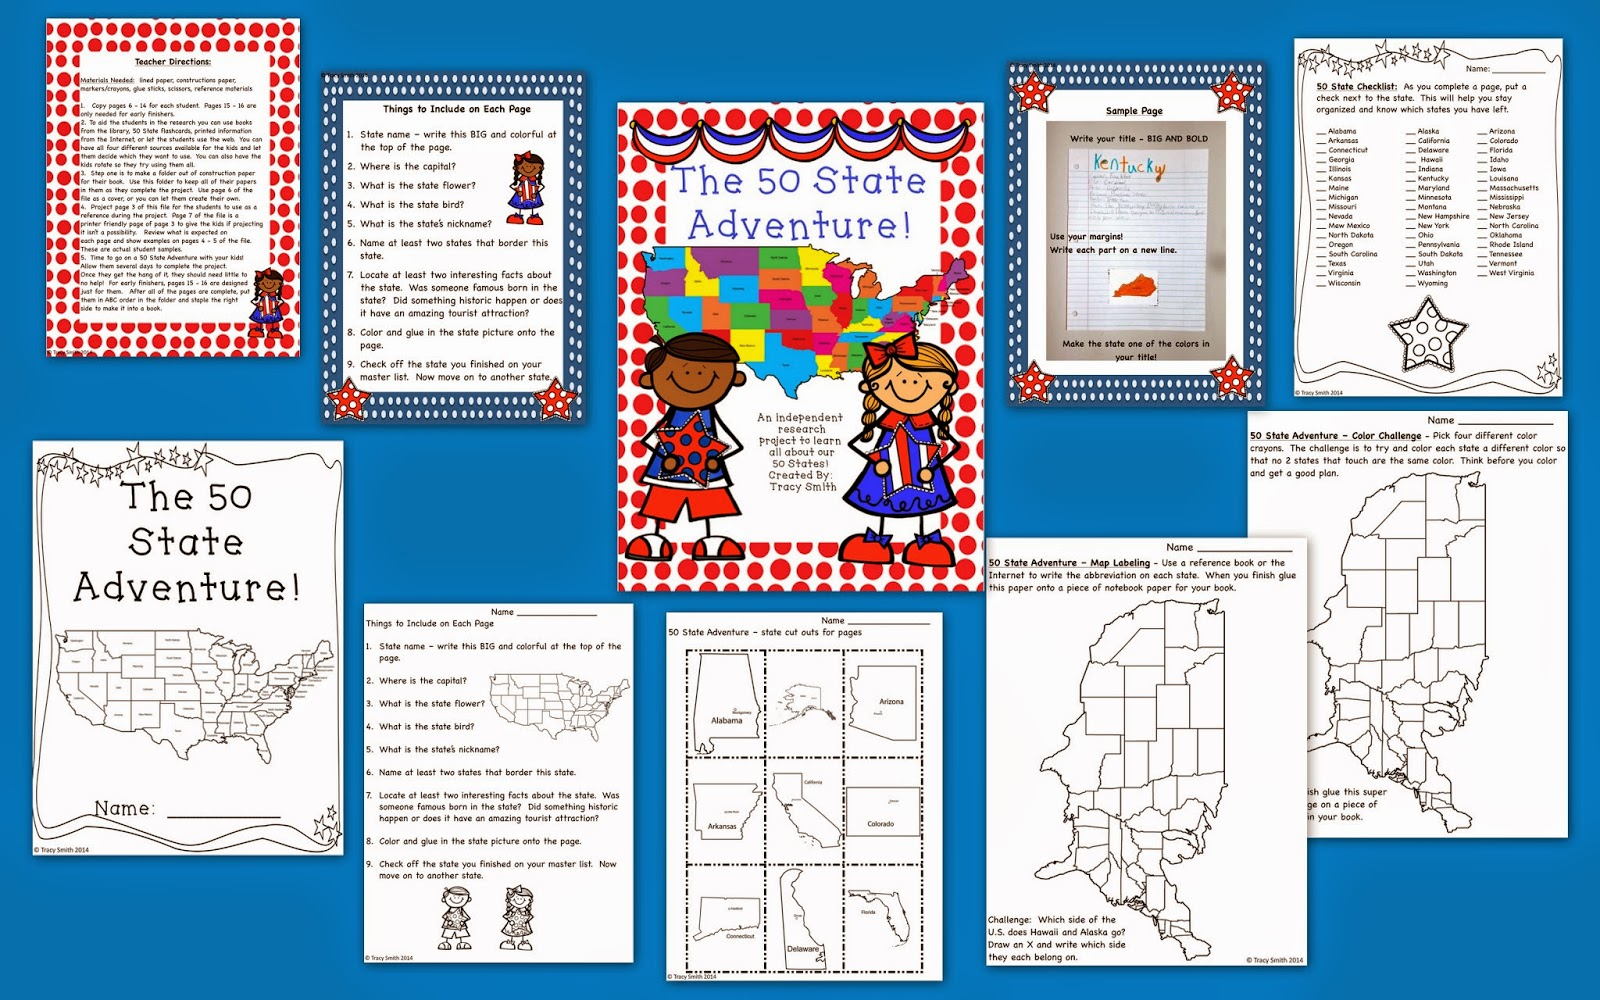 http://www.teacherspayteachers.com/Product/The-50-State-Adventure-Learn-about-all-the-states-Gr-2-5-1257932